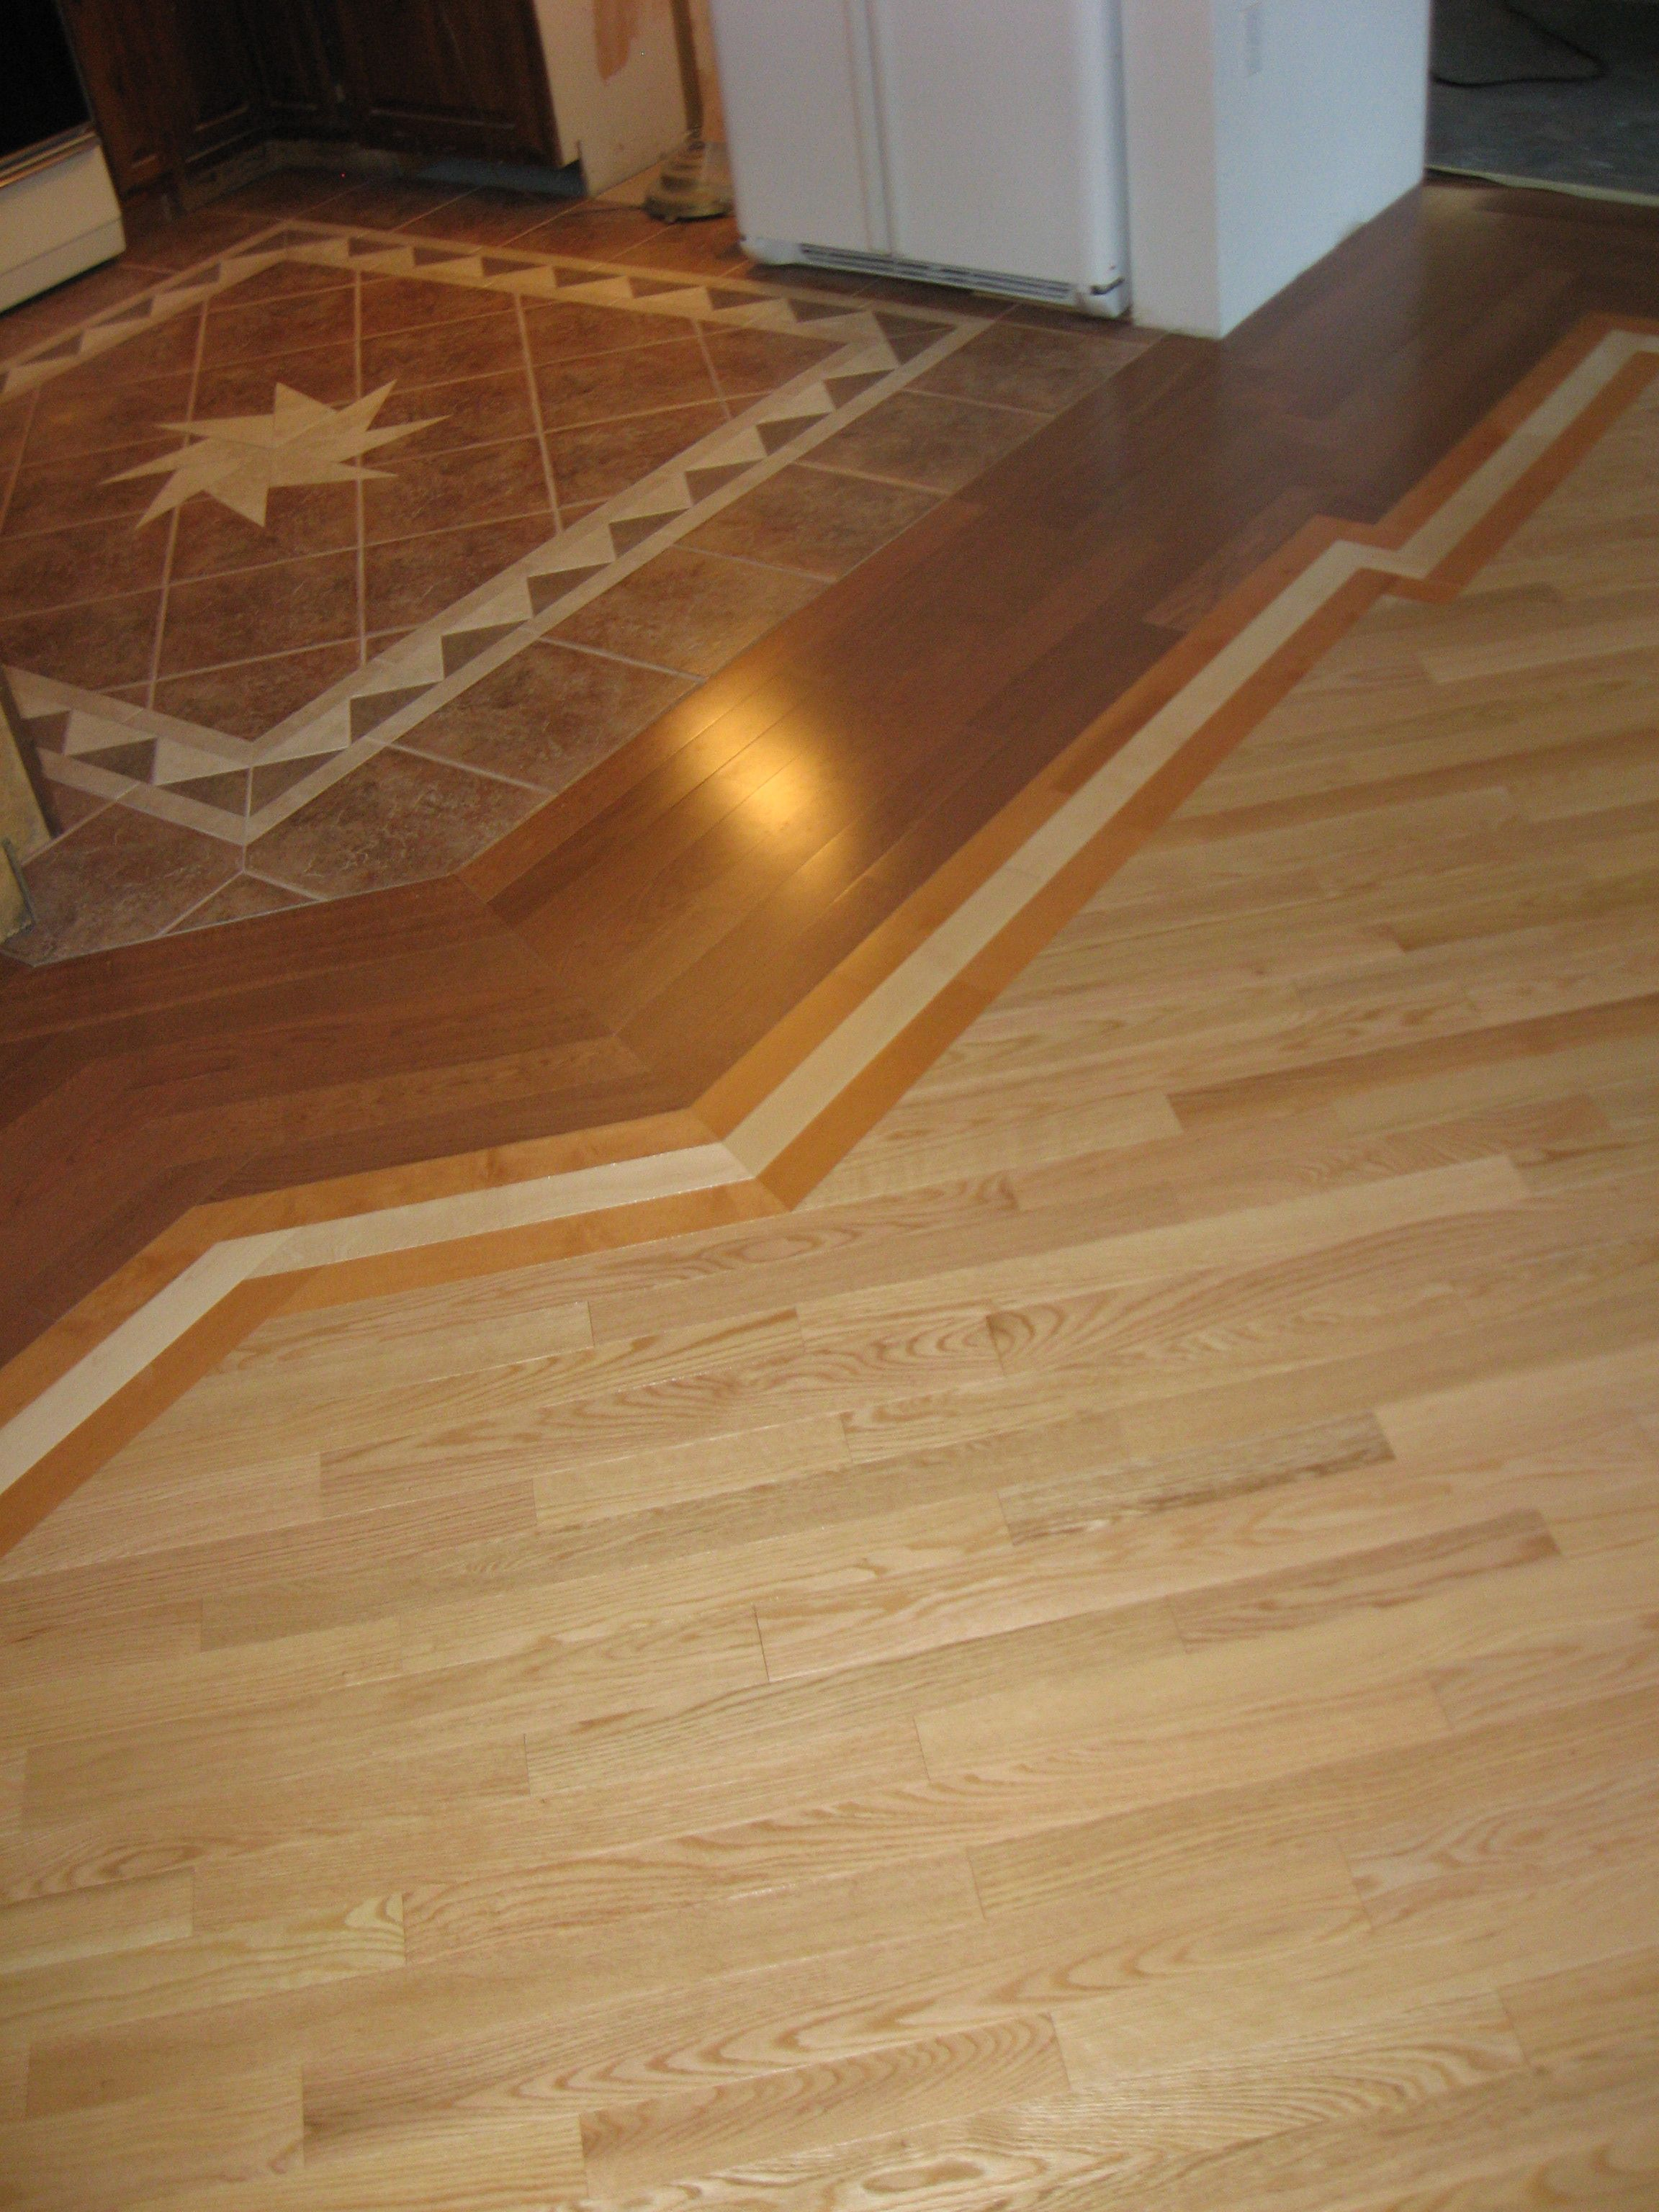 Hardwood Flooring Trendy Hardwood Floor Tile Kitchen With Brick